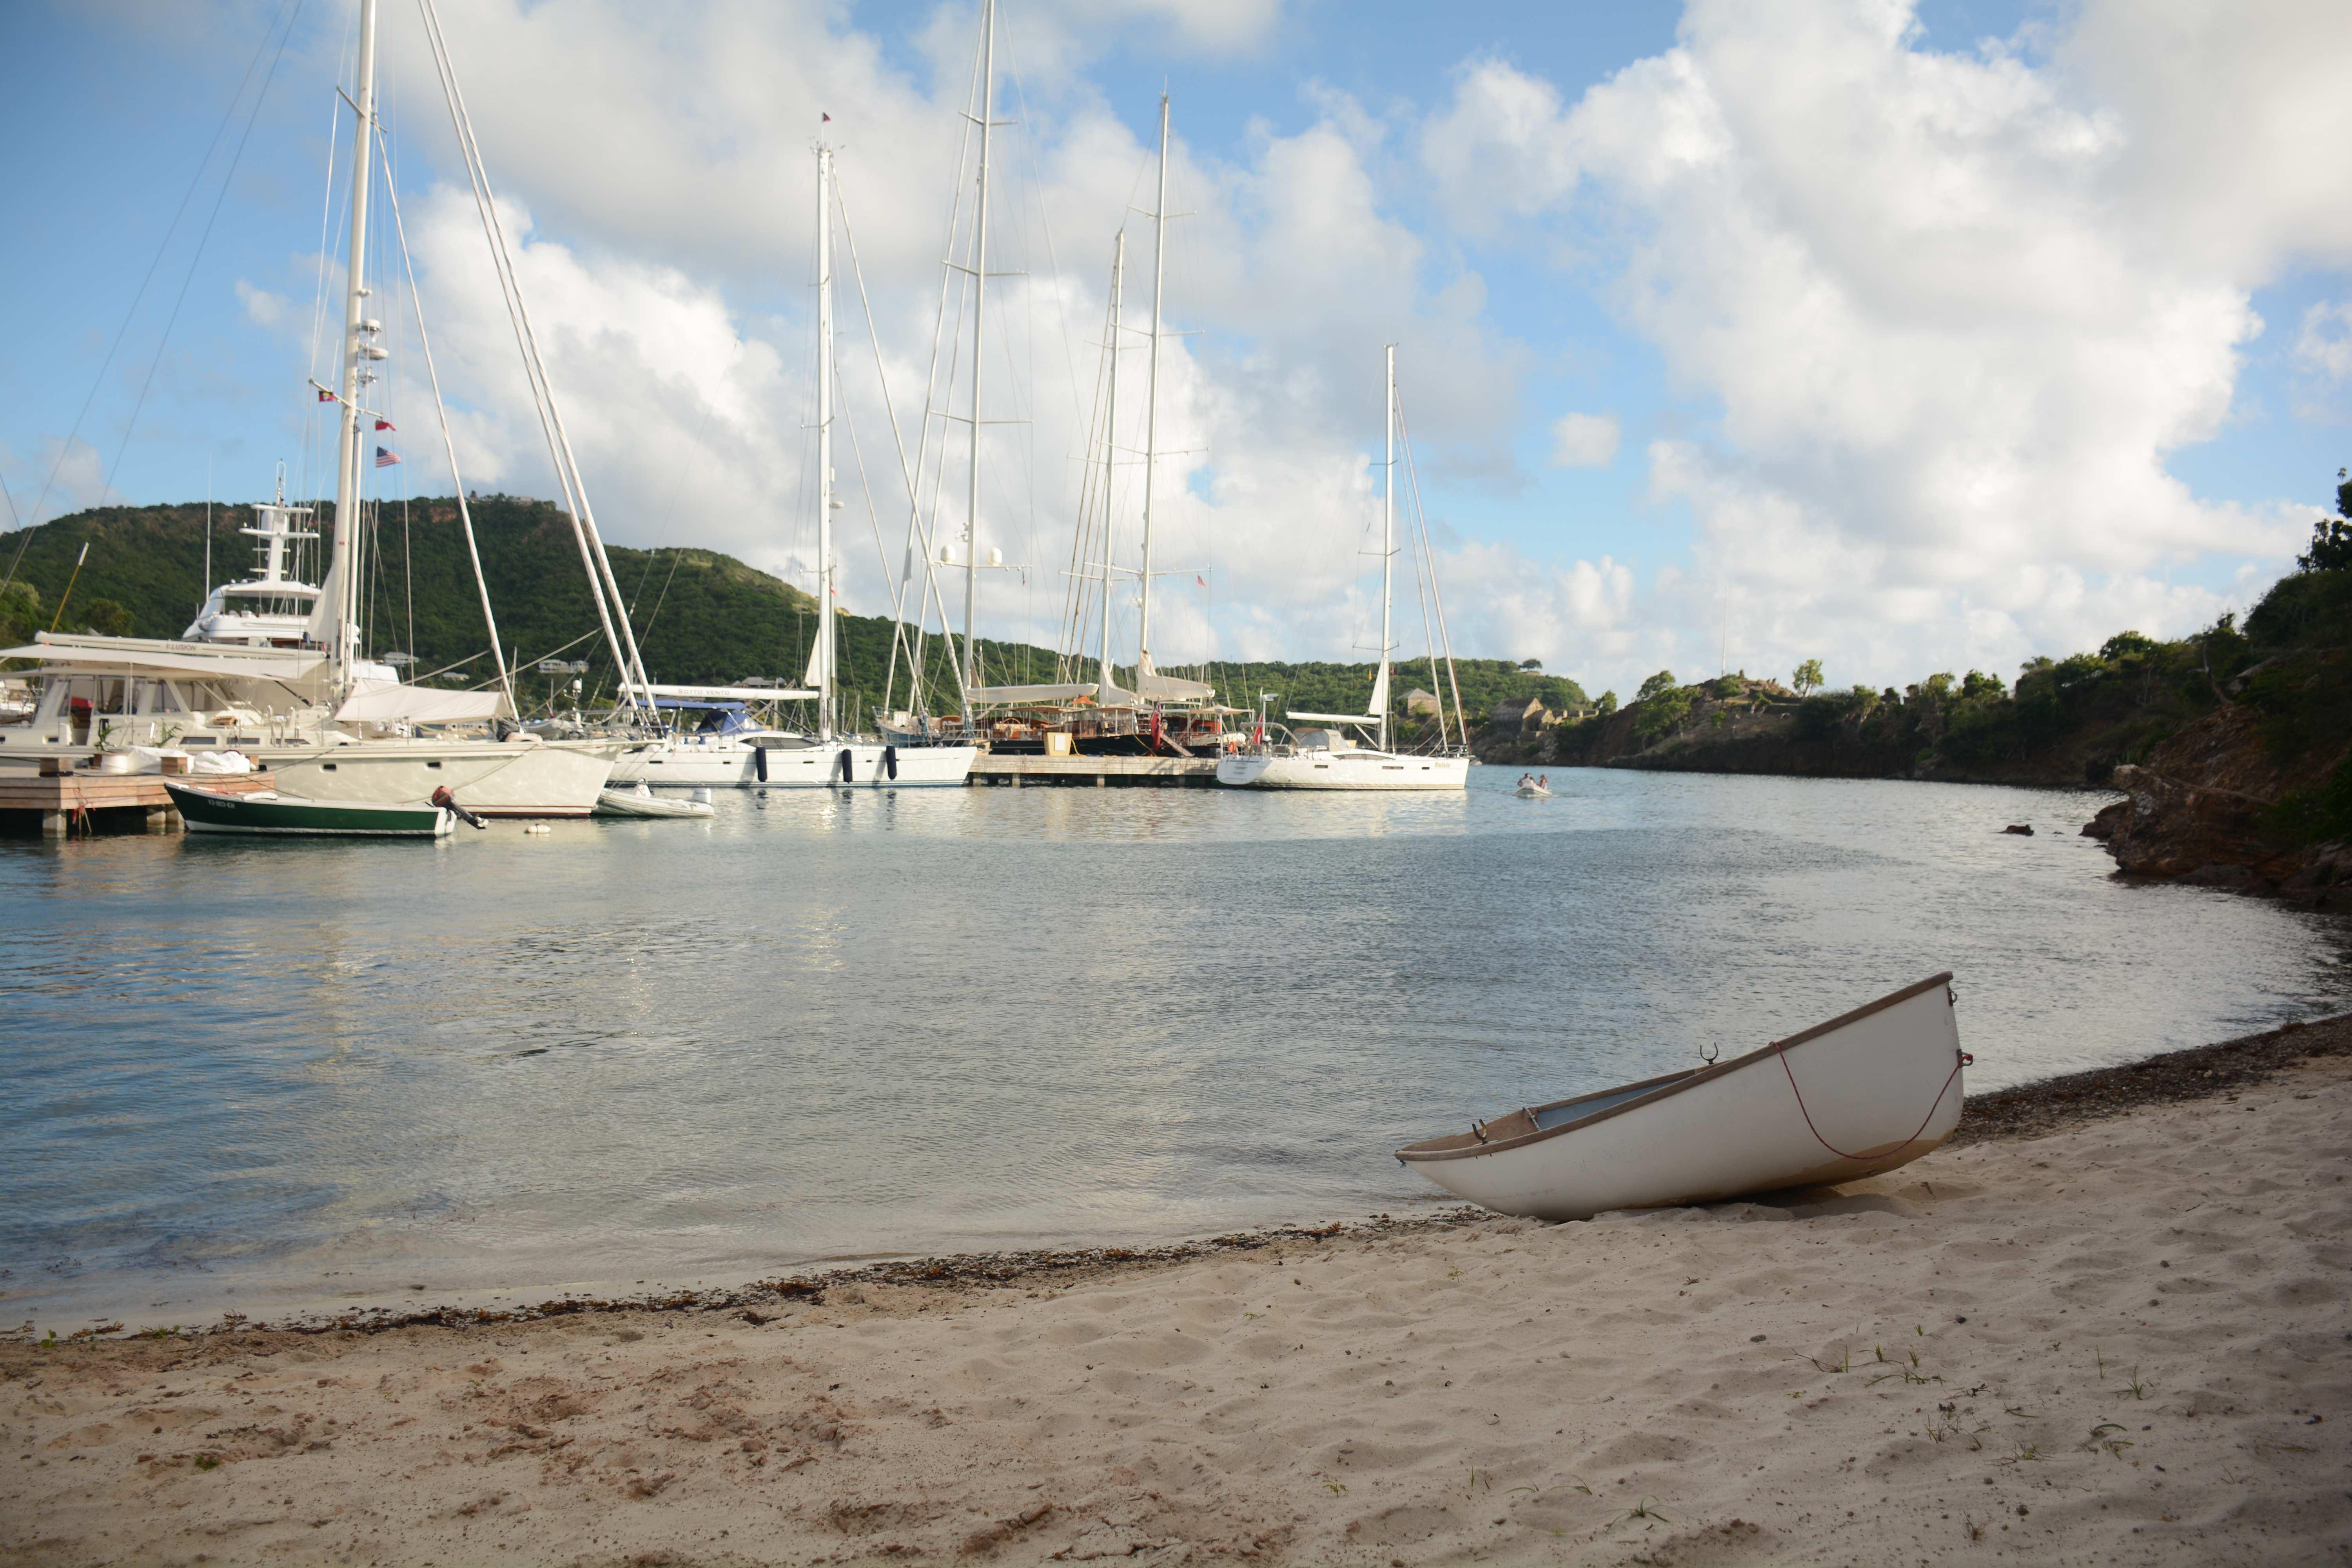 image of beach with sailboats docked in the background.